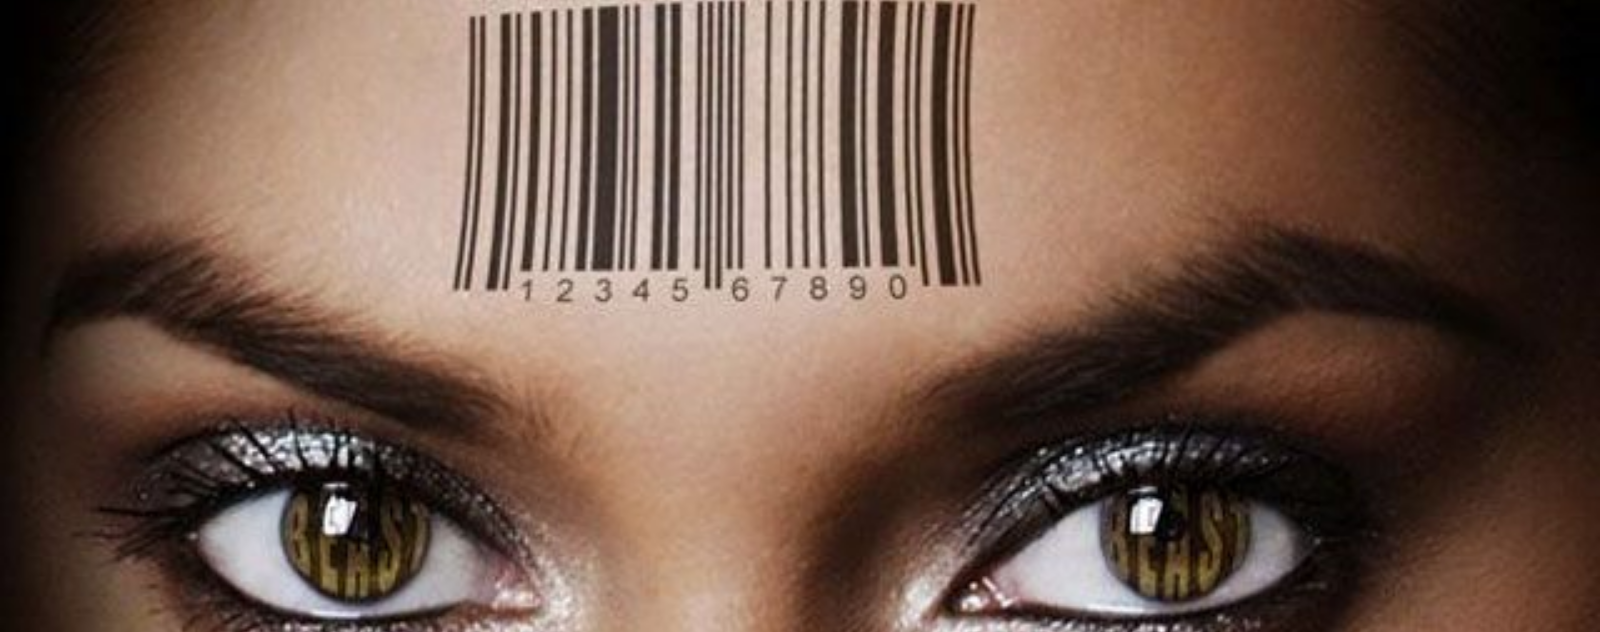 mark of the beast barcode